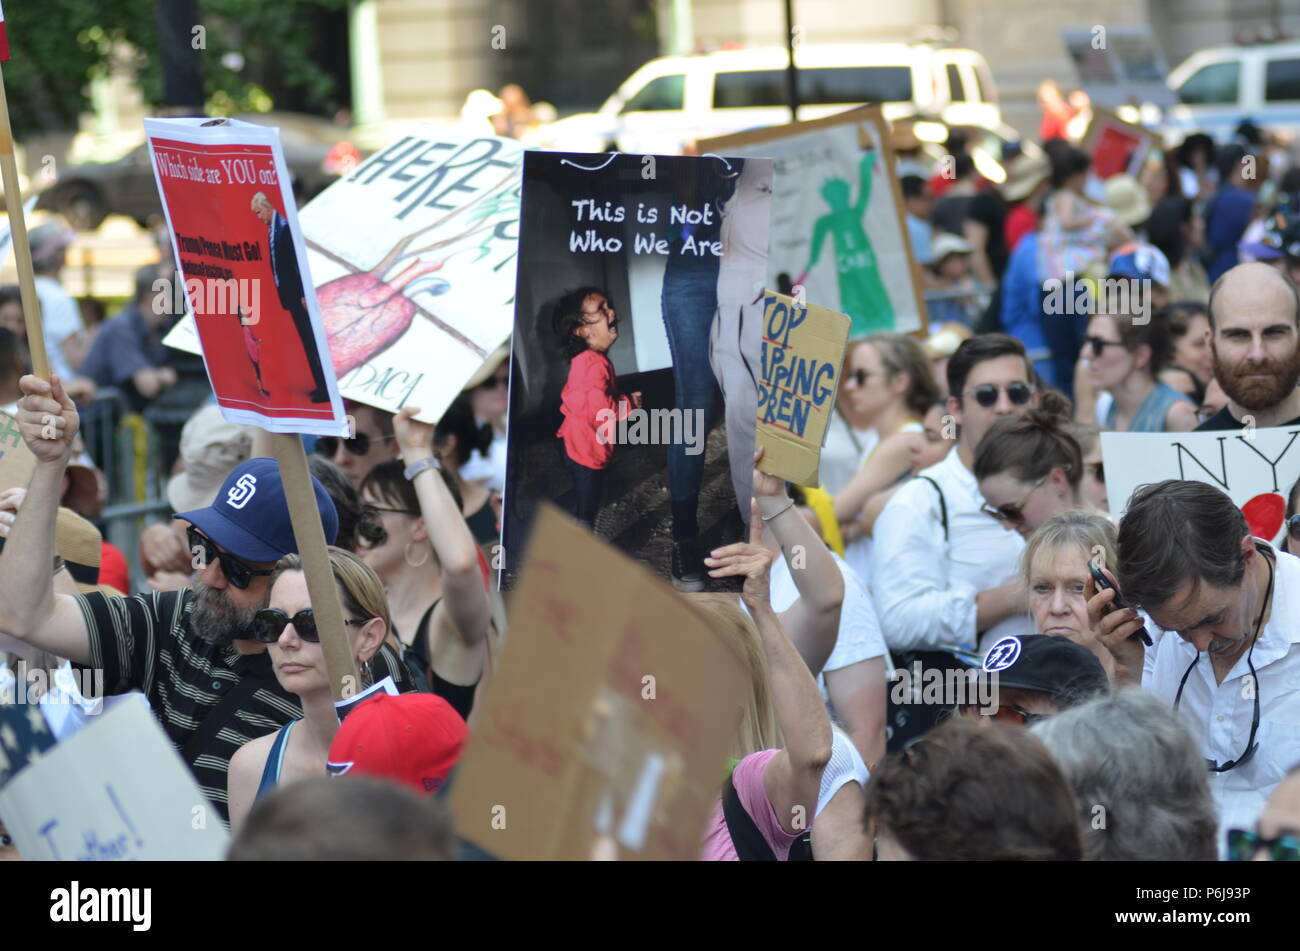 Manhattan, New York, USA. 30th June, 2018. Thousands of demonstrators and immigrant rights activists gathered at Foley Square in Lower Manhattan for the rally against ICE and immigrants deportation to keep families together. Credit: Ryan Rahman/Alamy Live News - Stock Image